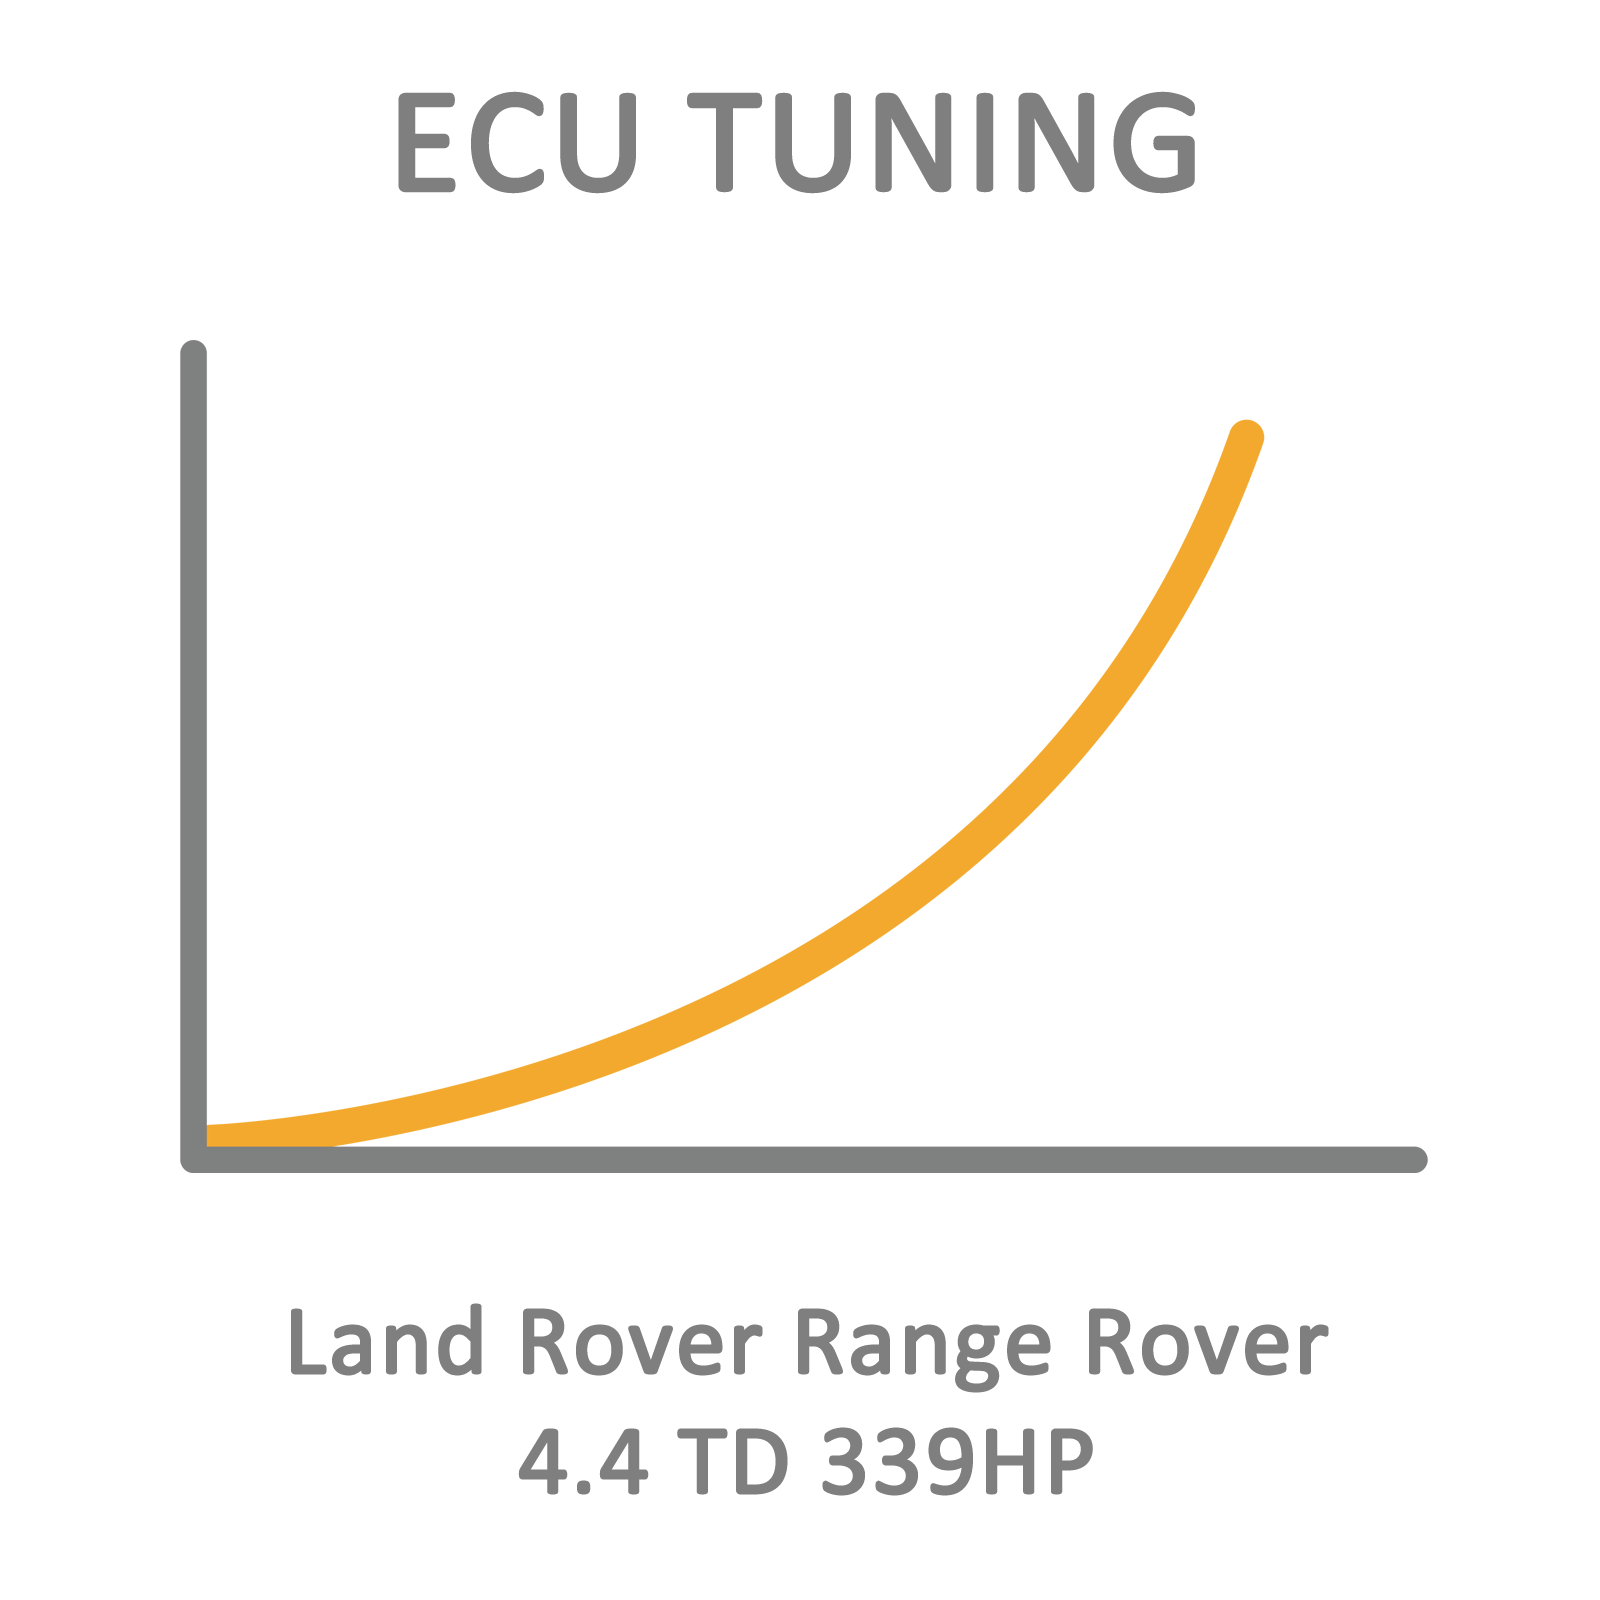 Land Rover Range Rover 4.4 TD 339HP ECU Tuning Remapping